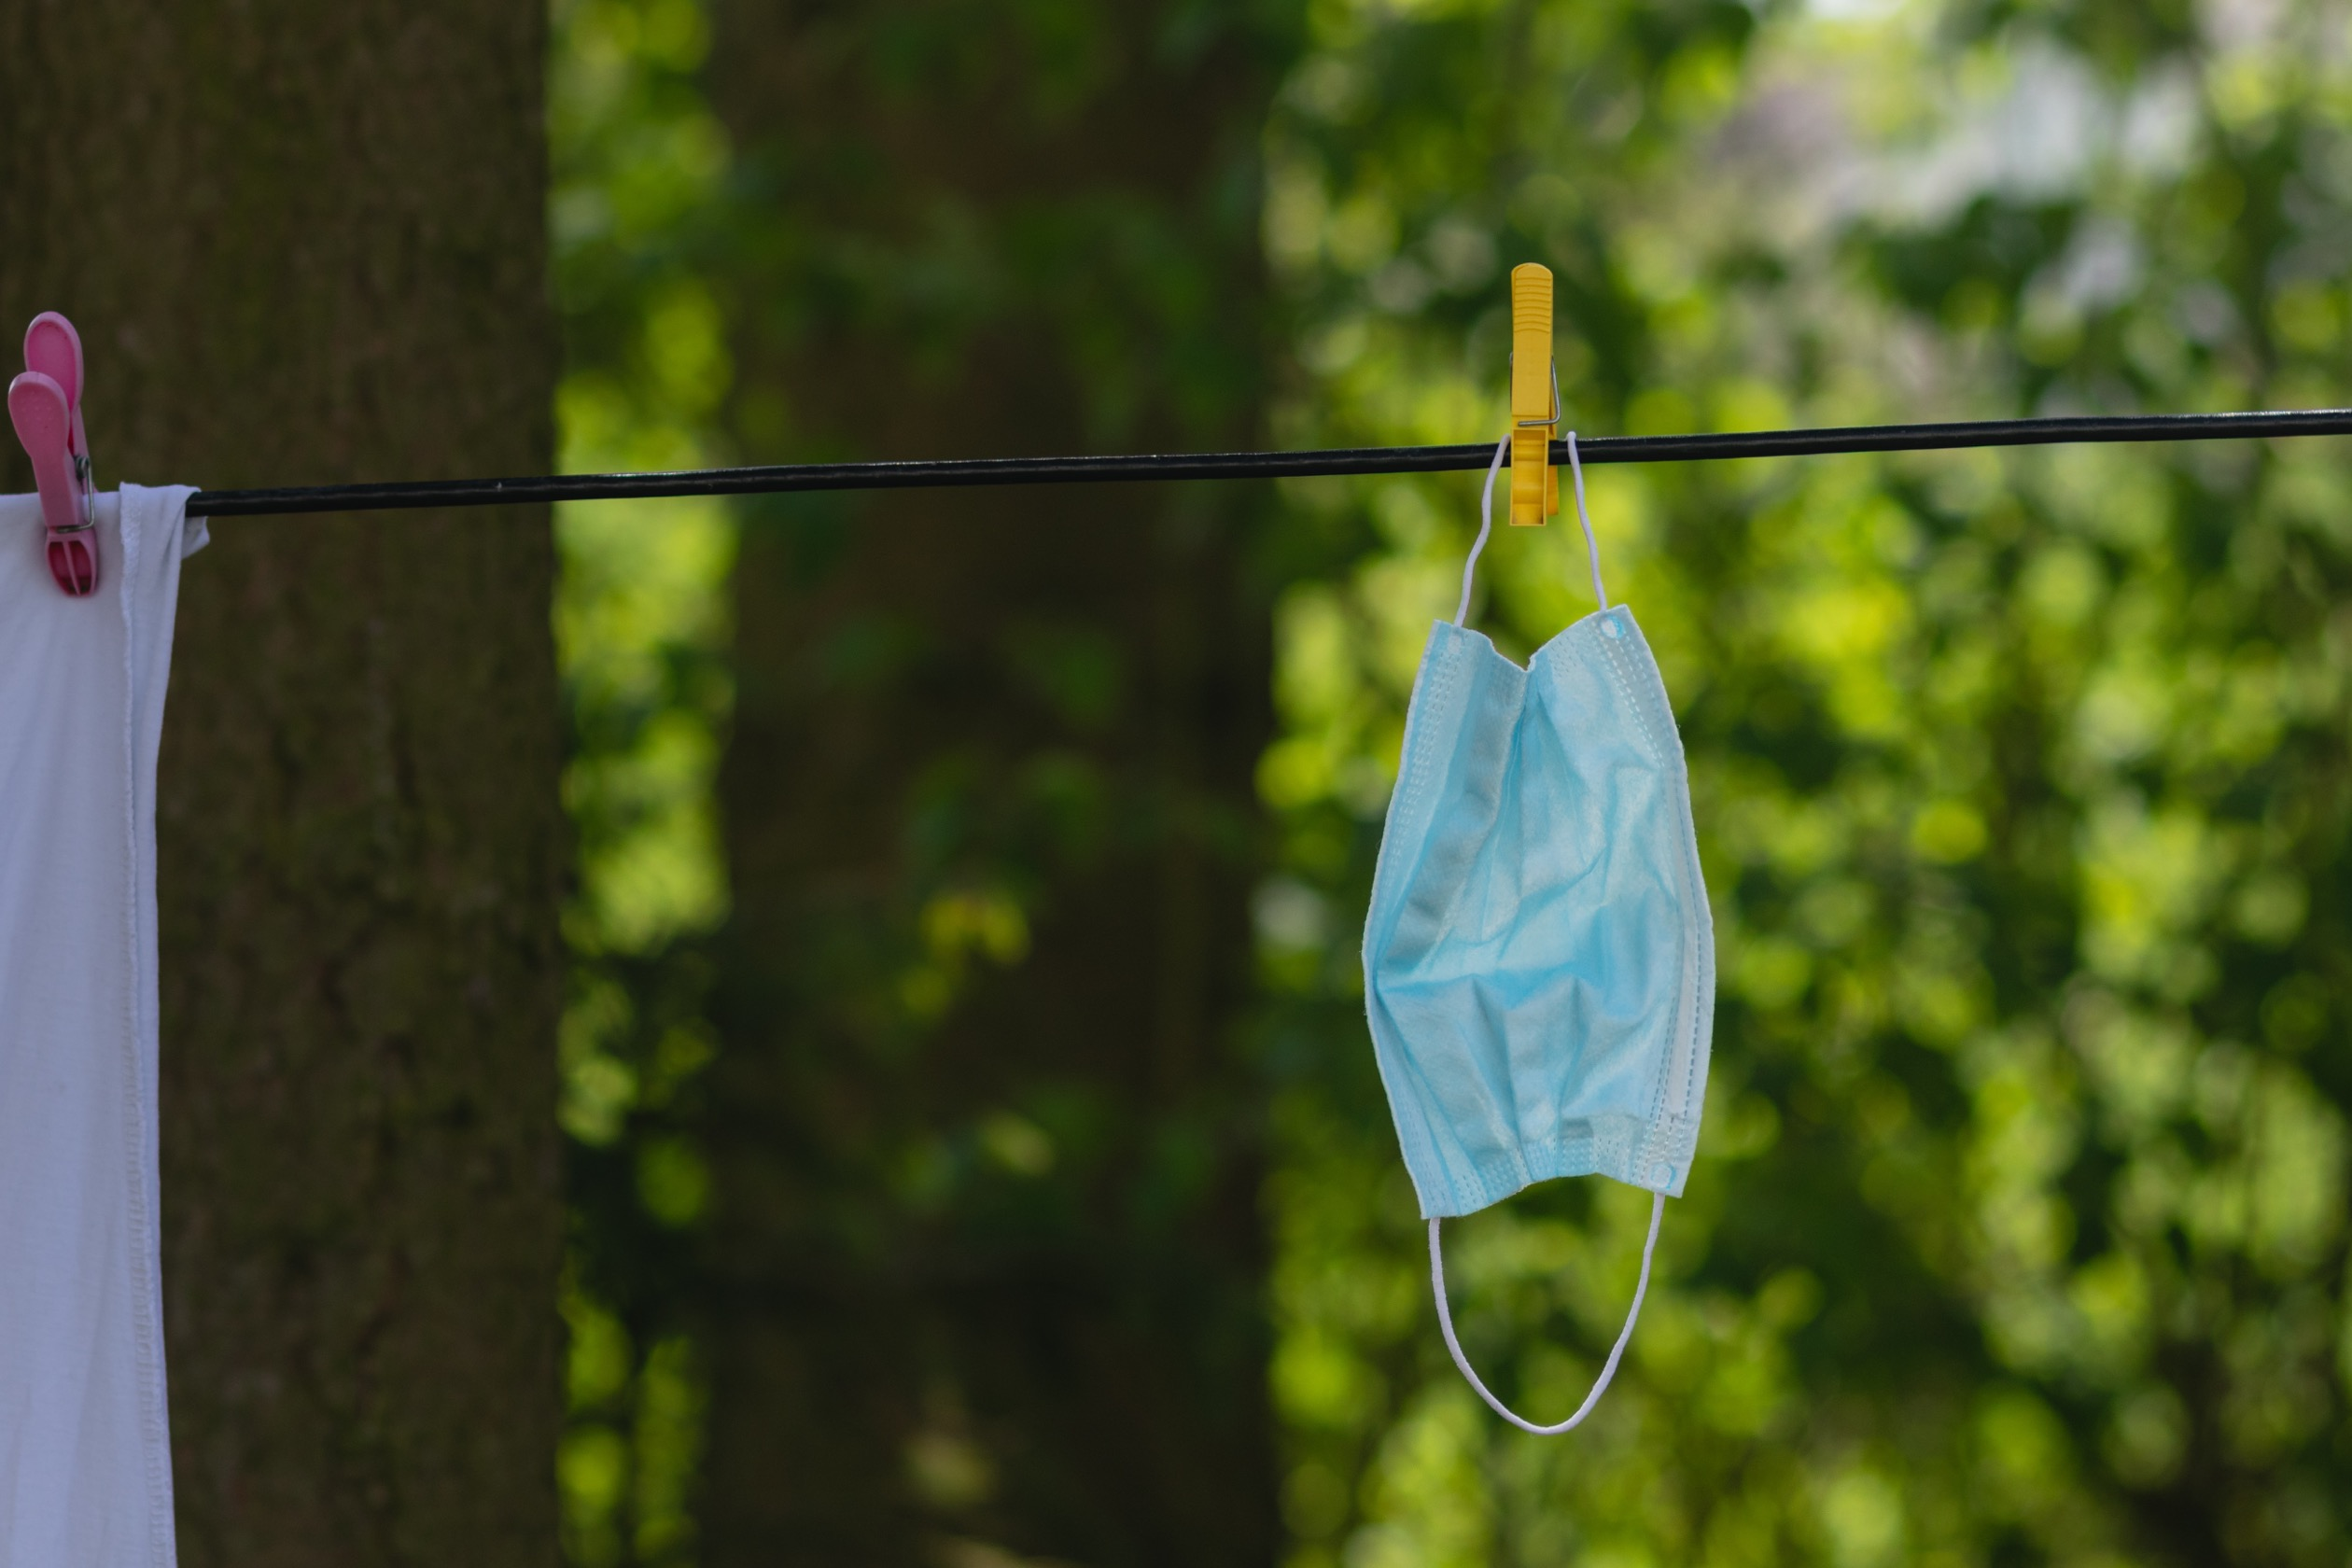 A surgical mask hanging from a clothesline outdoors.